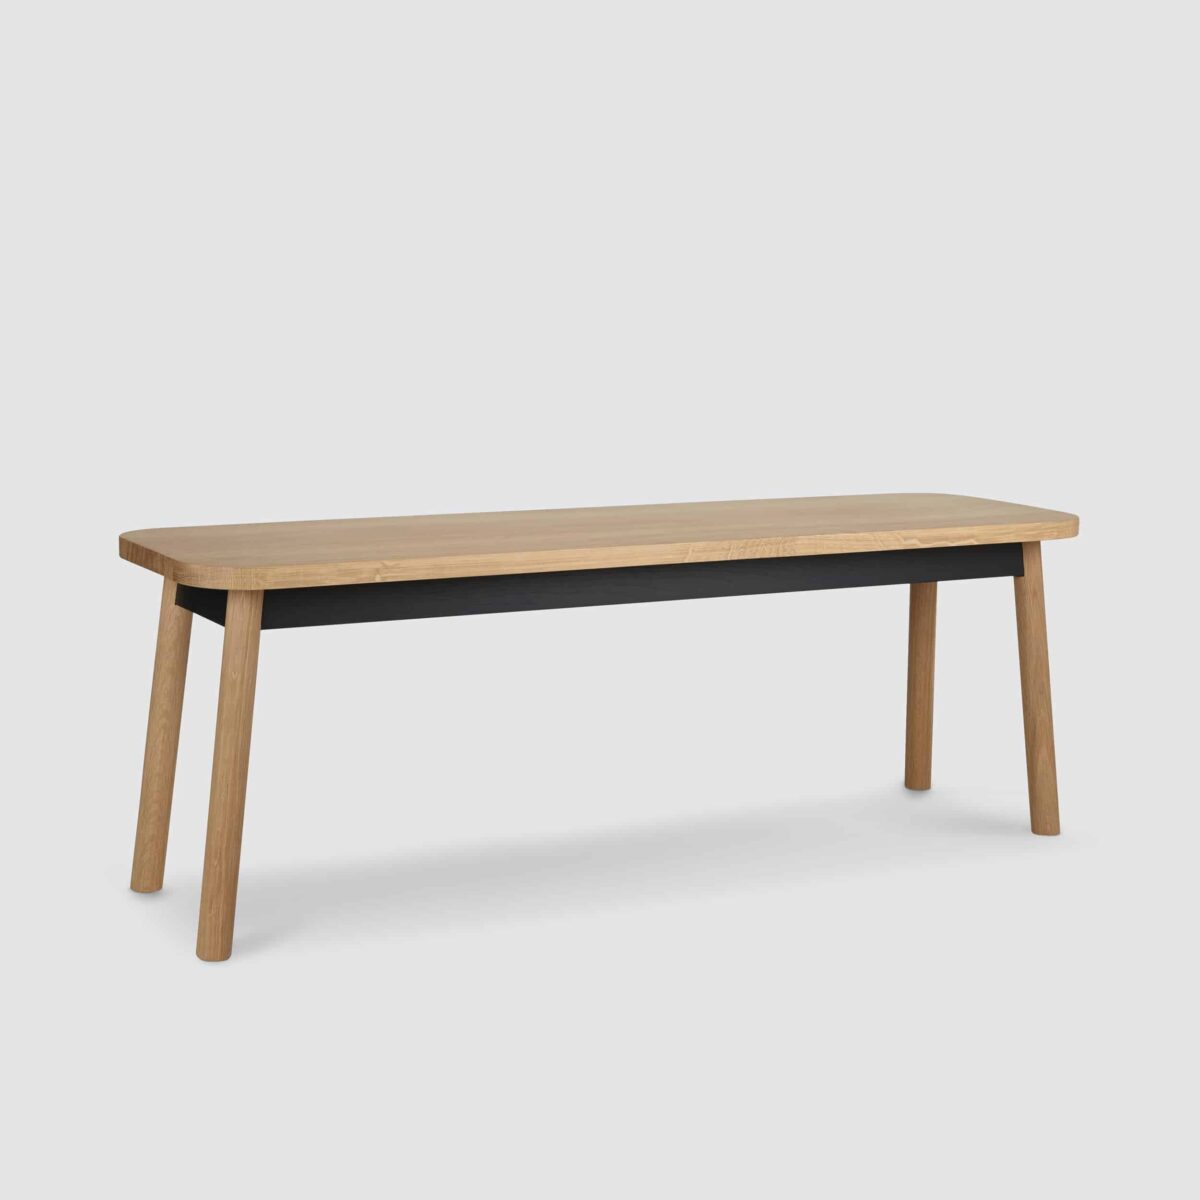 semley-bench-large-oak-another-country-001